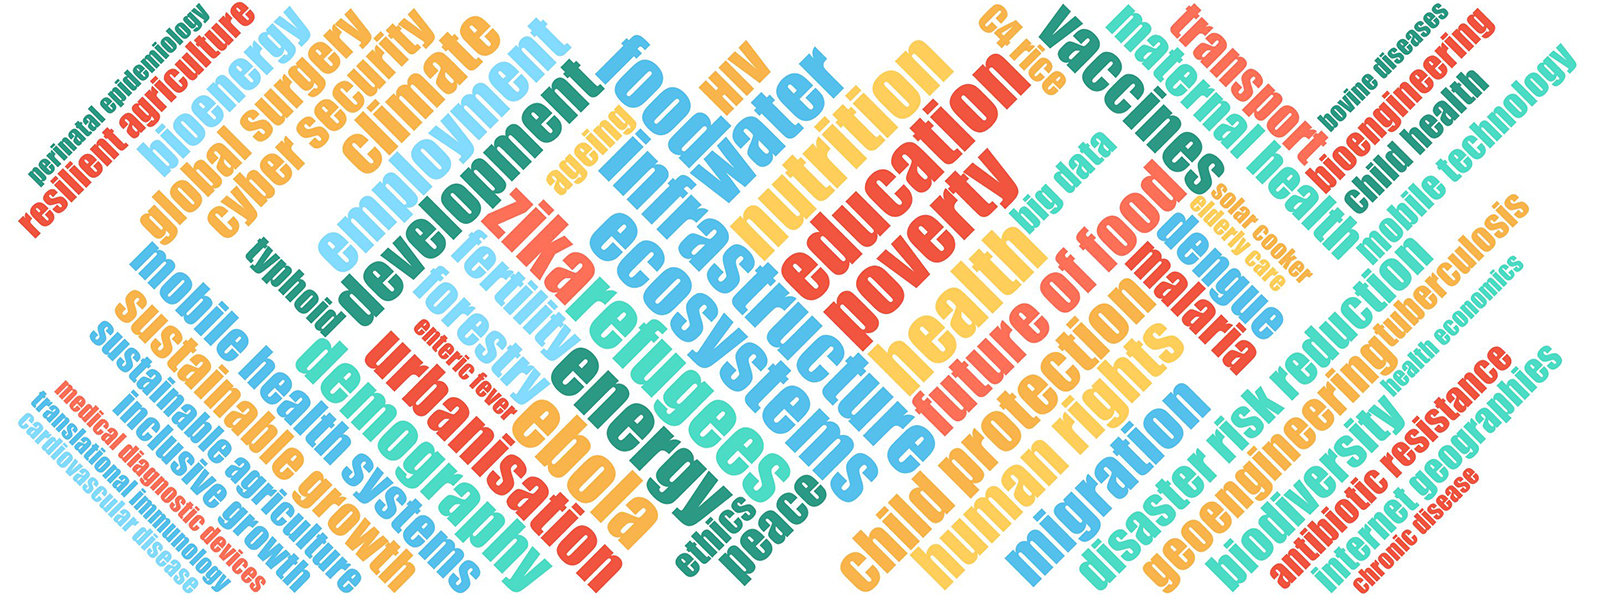 Oxford expertise word cloud